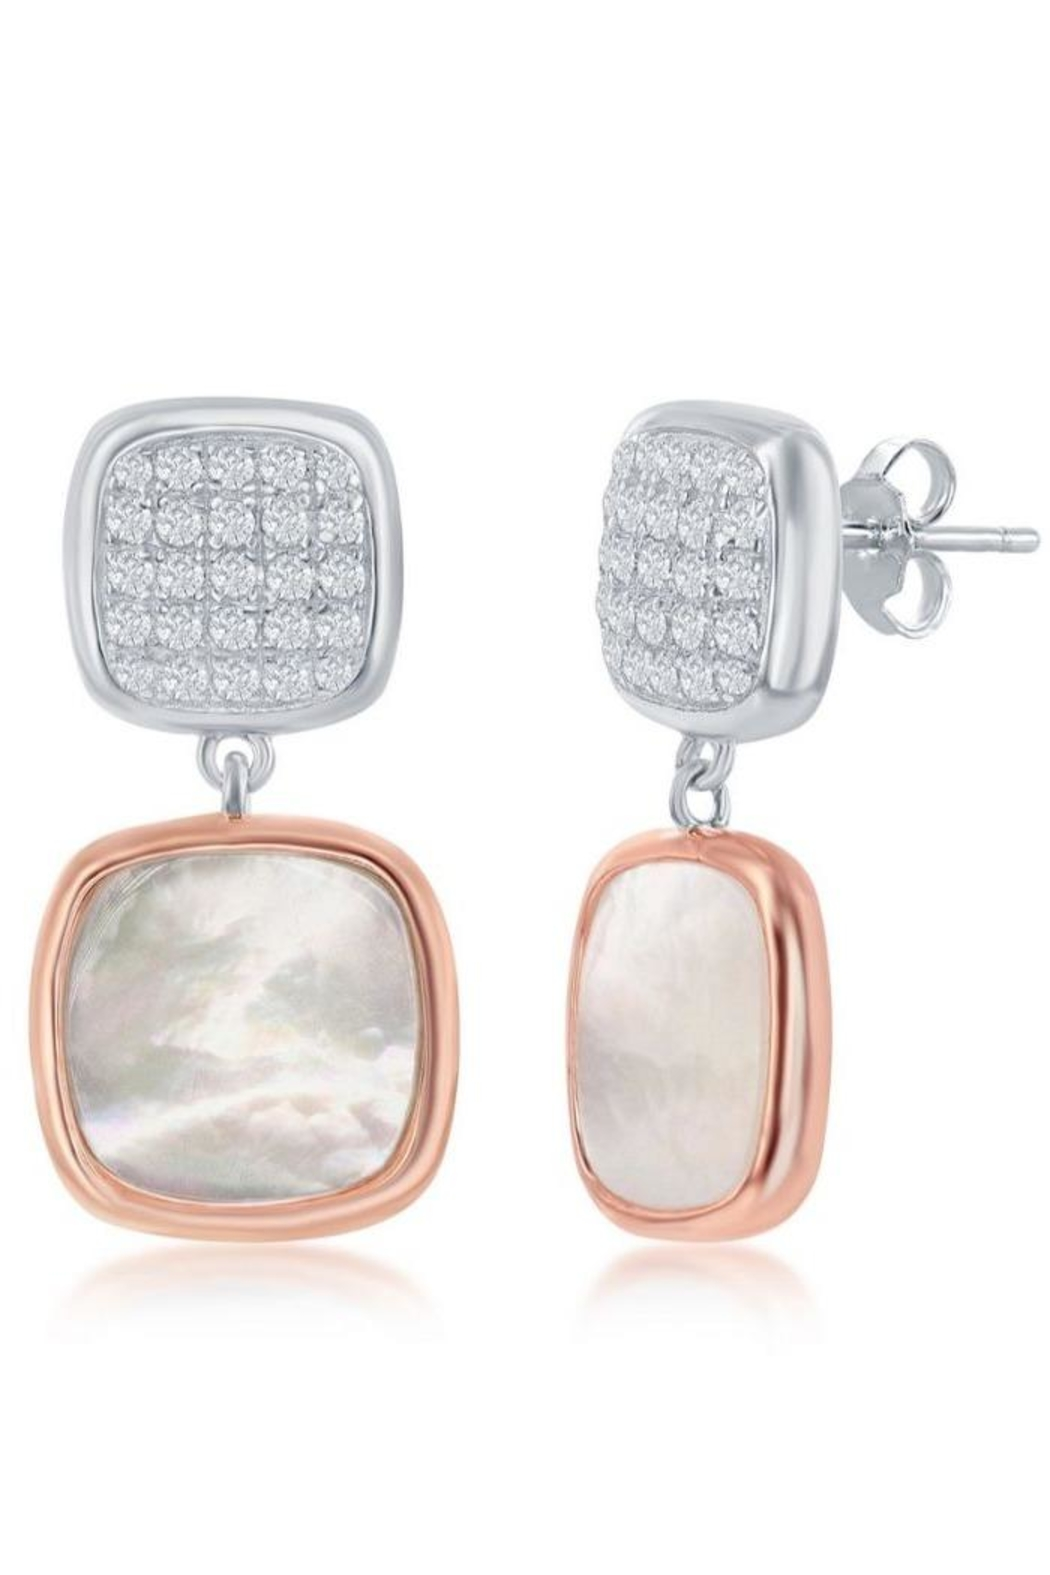 Xtras Square Mop Earrings - Main Image